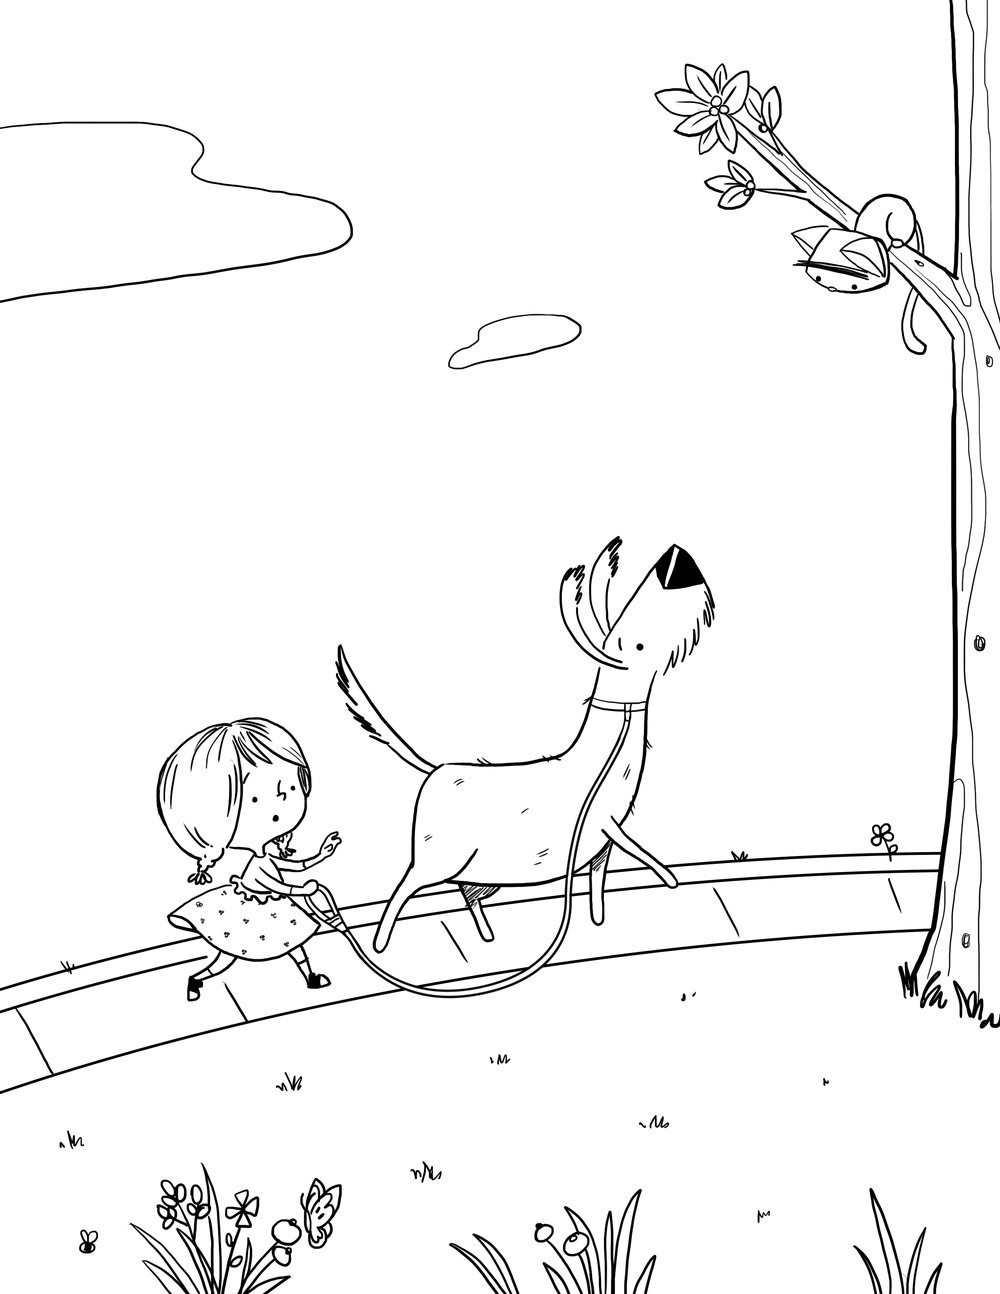 Walk Your Dog Coloring Page